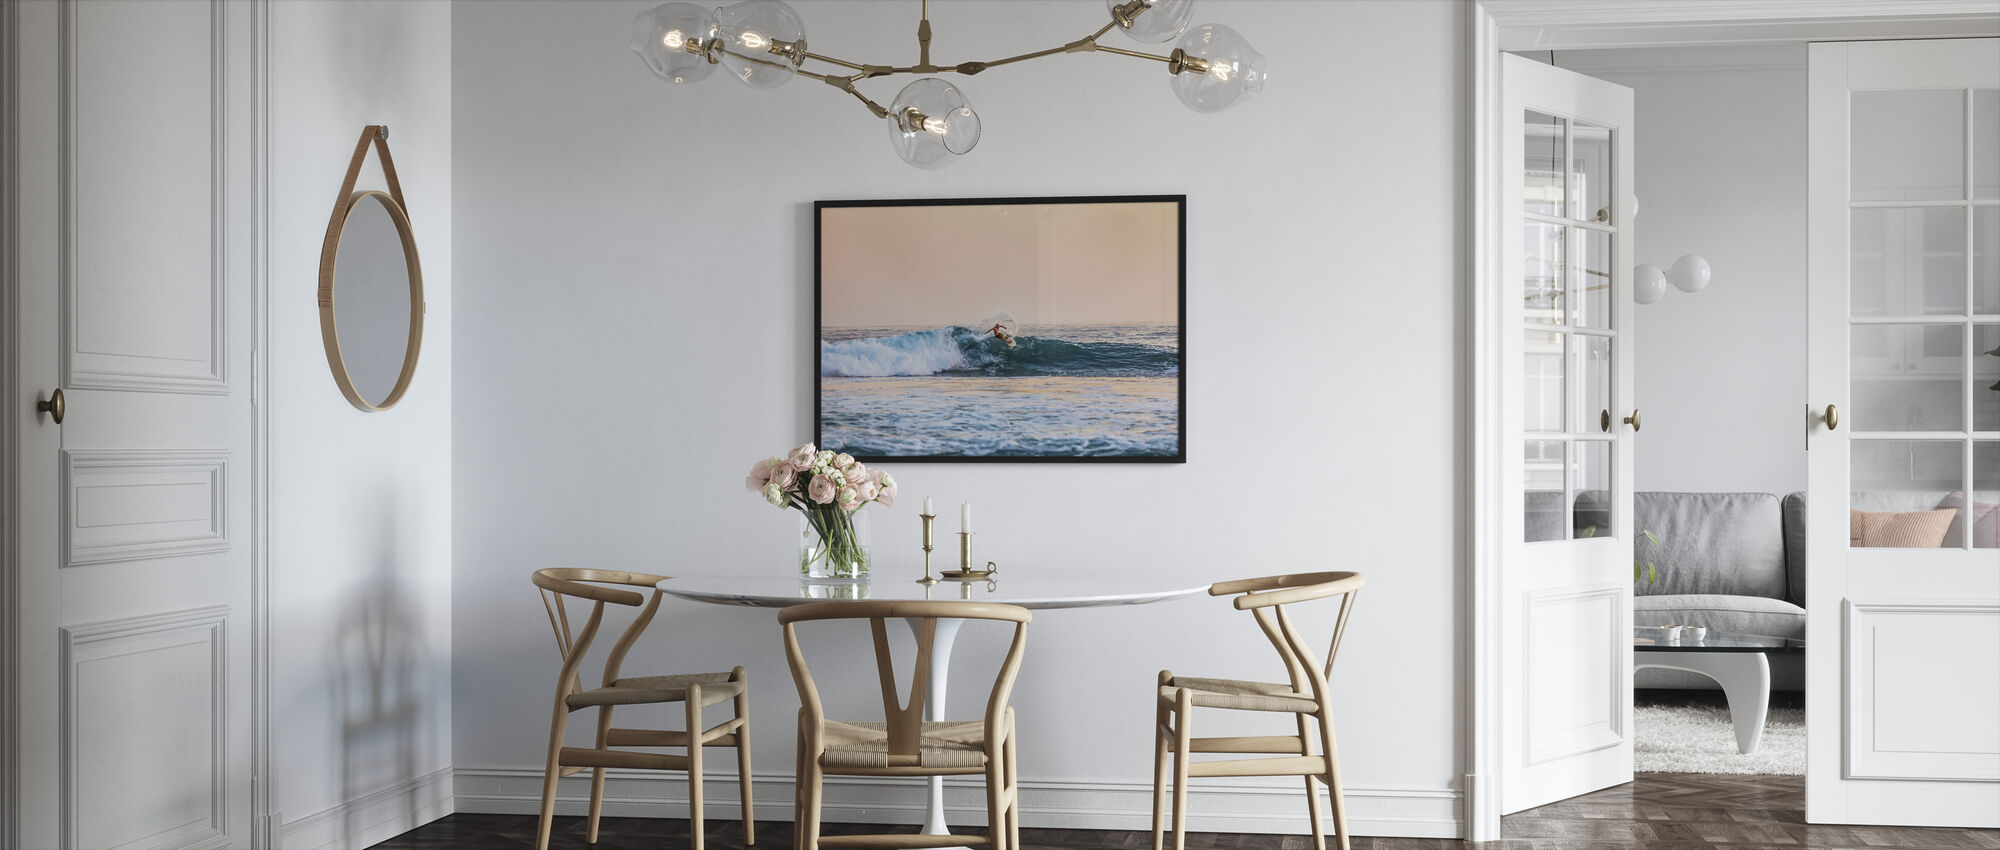 Surfing - Framed print - Kitchen